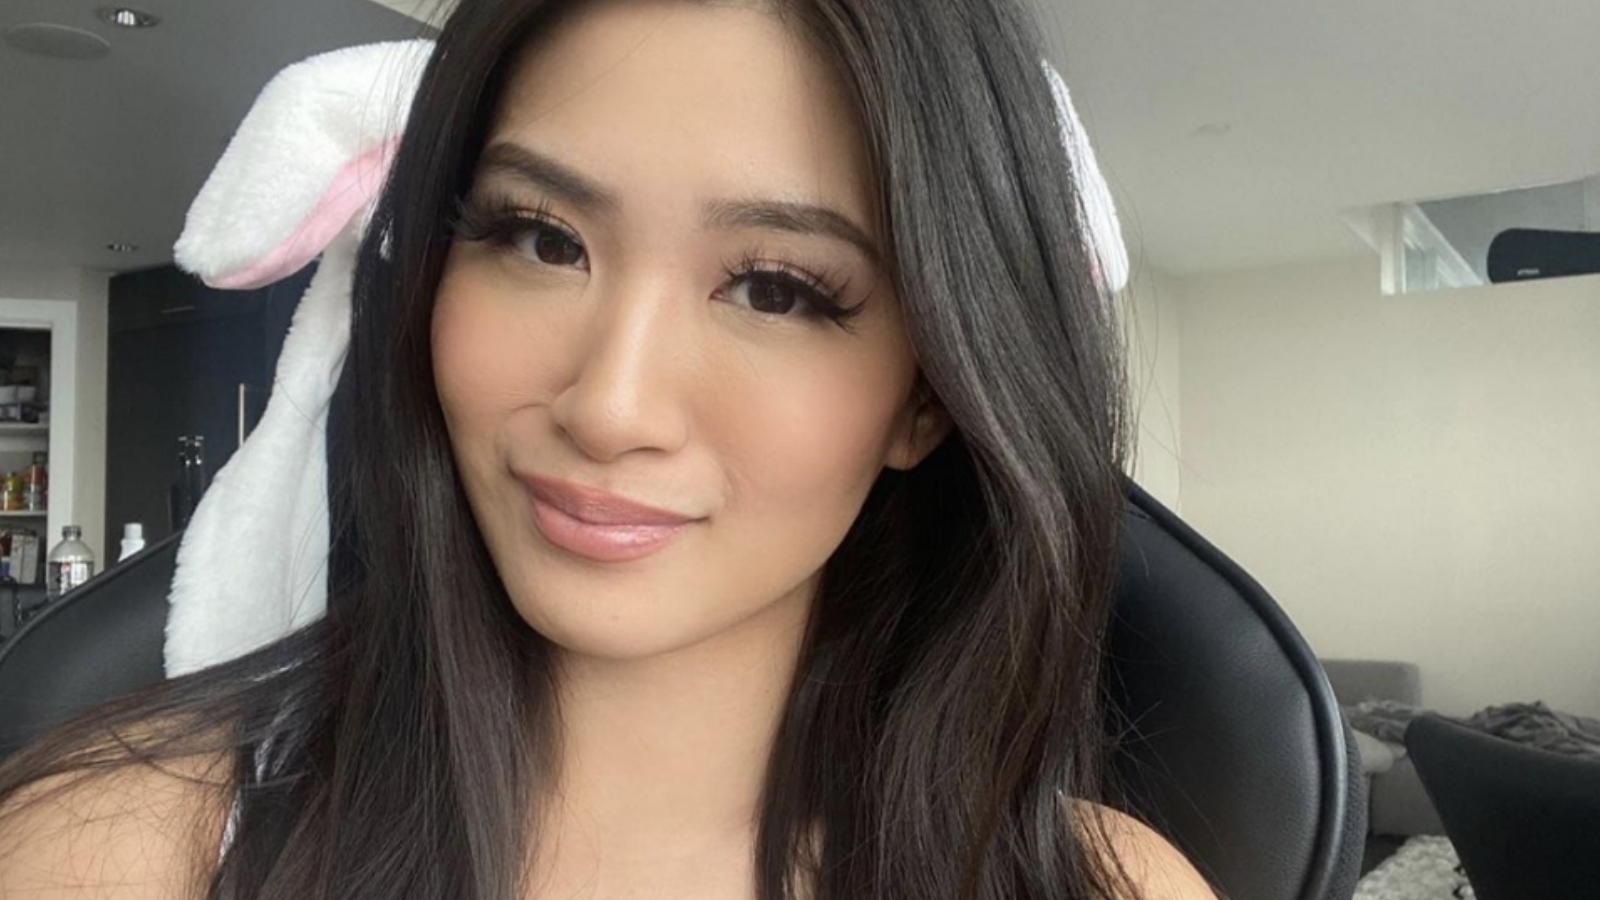 Ohlana streaming on Twitch